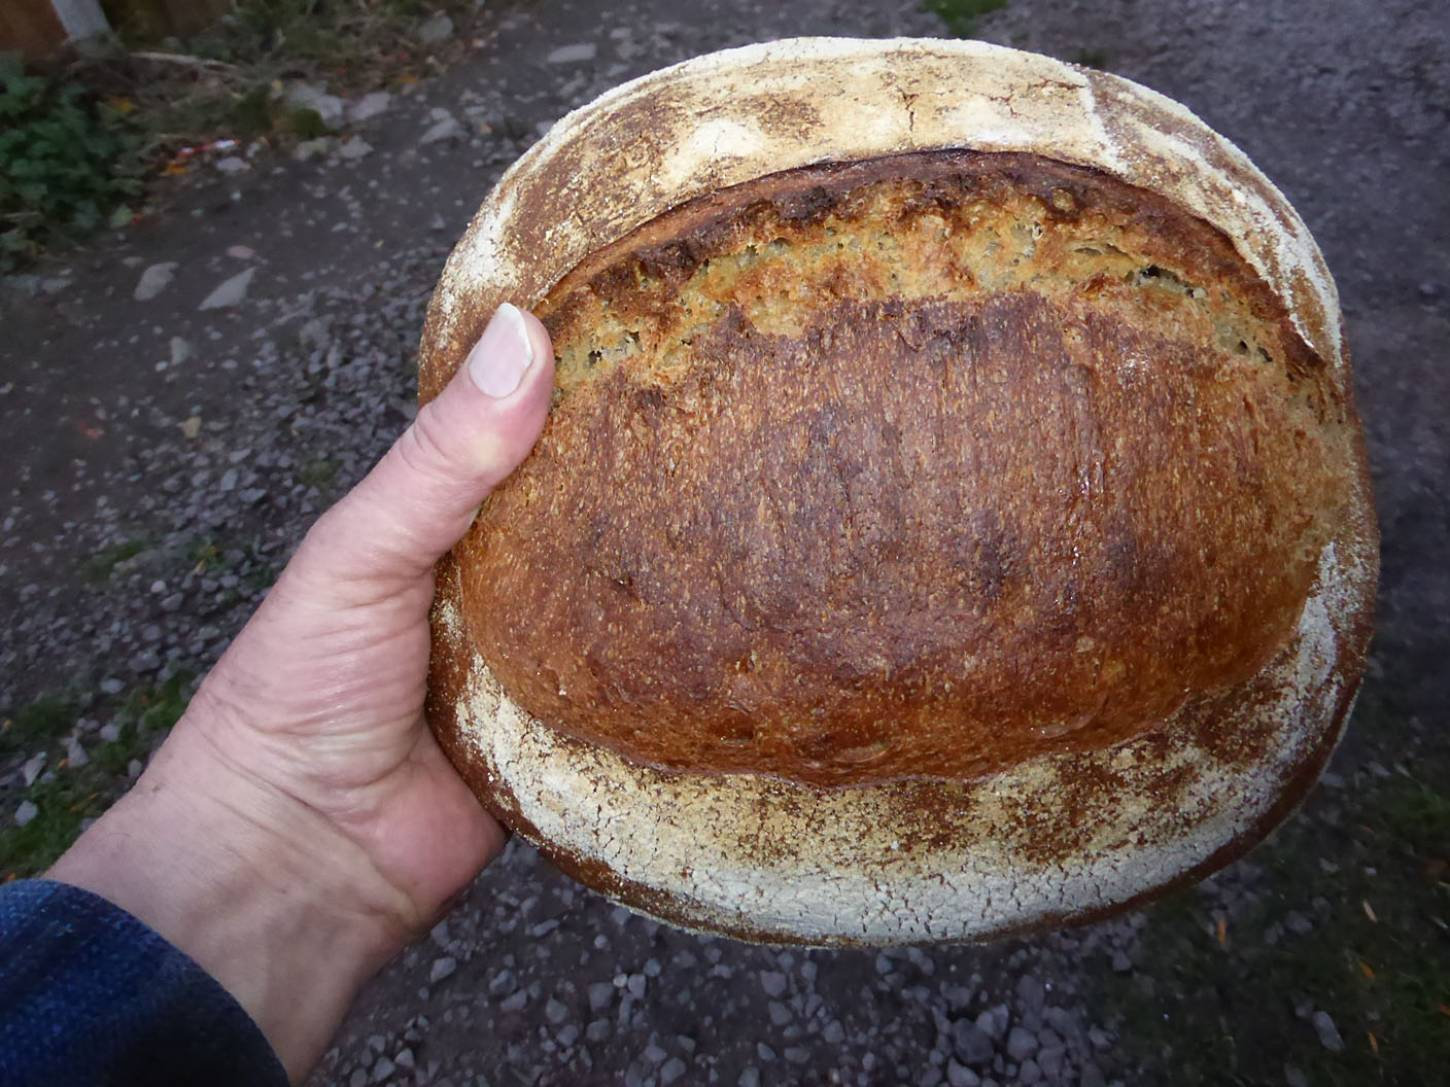 first baking test for the Miller's Choice, without orange juice - 5:00pm&nbsp;23<sup>rd</sup>&nbsp;Nov.&nbsp;'17  <a href='http://maps.google.com/?t=h&q=51.481239,-0.108564&z=18&output=embed' target=_blank><img src='http://www.brockwell-bake.org.uk/img/marker.png' style='border:none;vertical-align:top' height=16px></a>